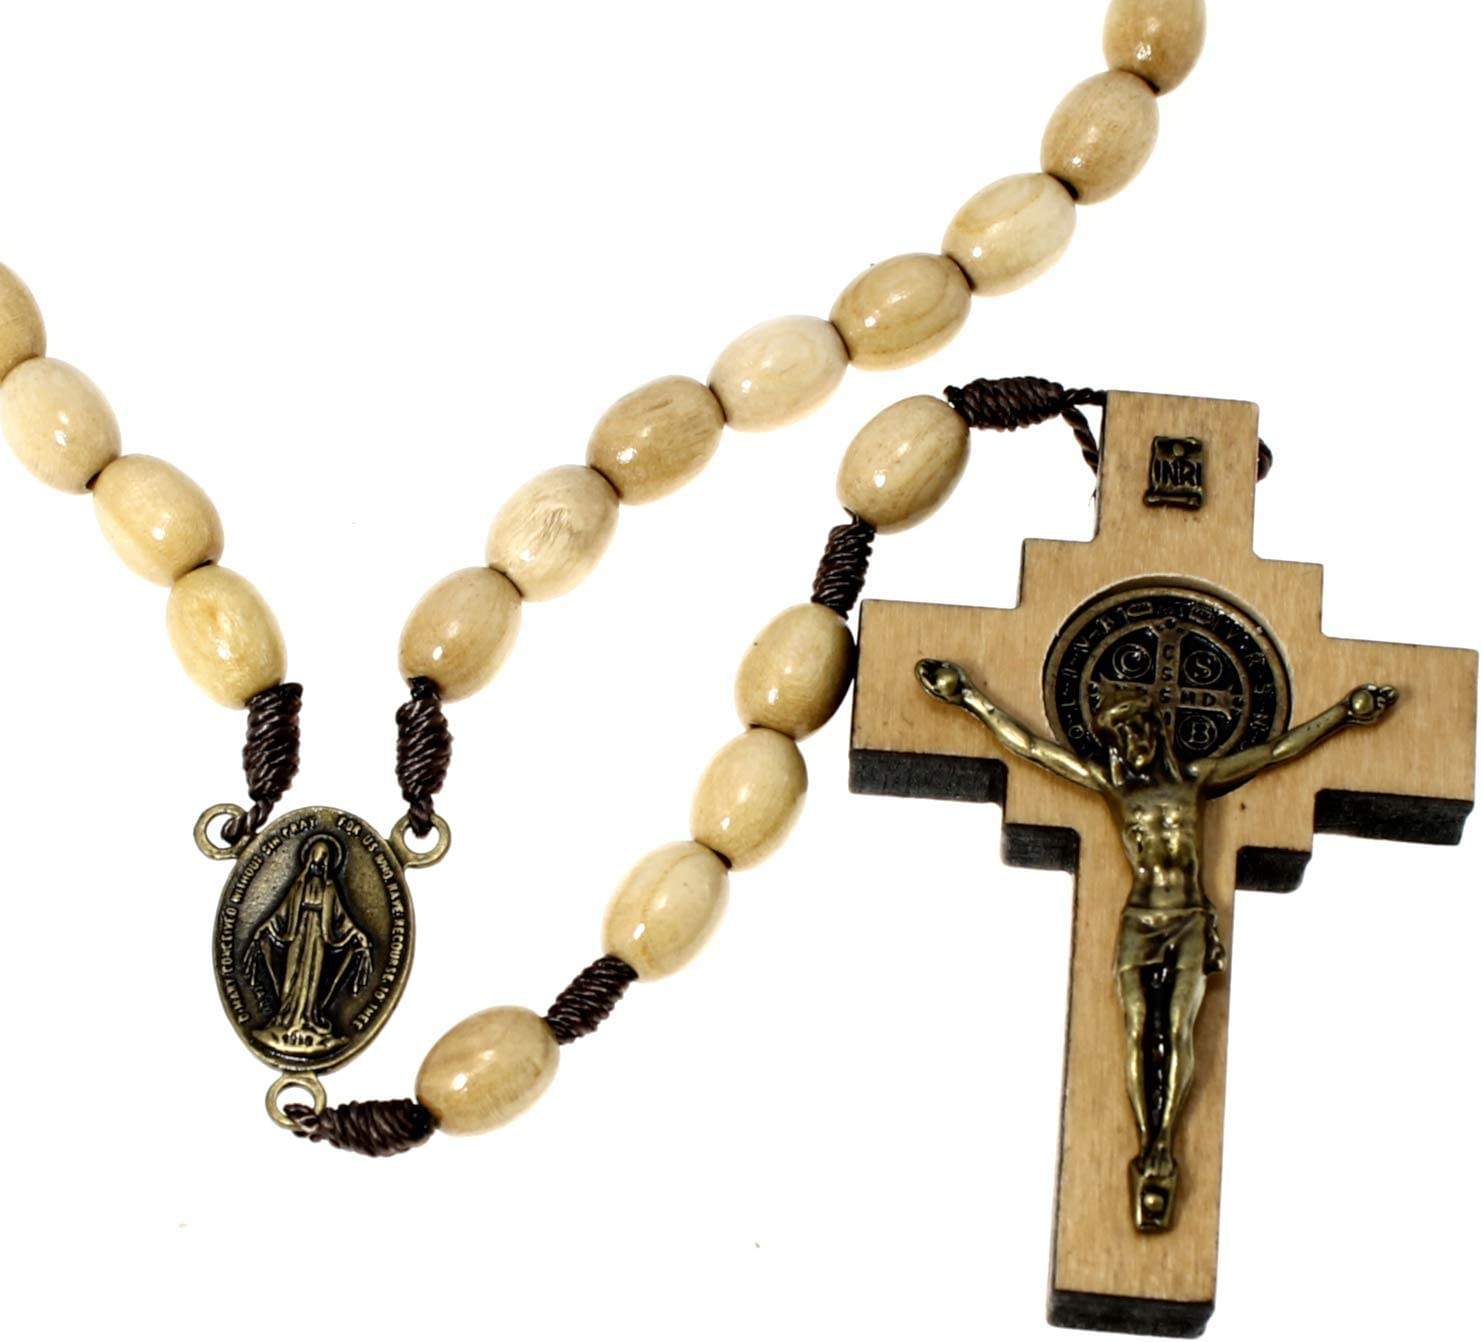 Alexander Castle White Wooden St Benedict Rosary Beads - Handmade Wooden and Metal Rosaries with Crucifix Come in a Rosary Pouch to Make a Great Catholic or Christian Gift